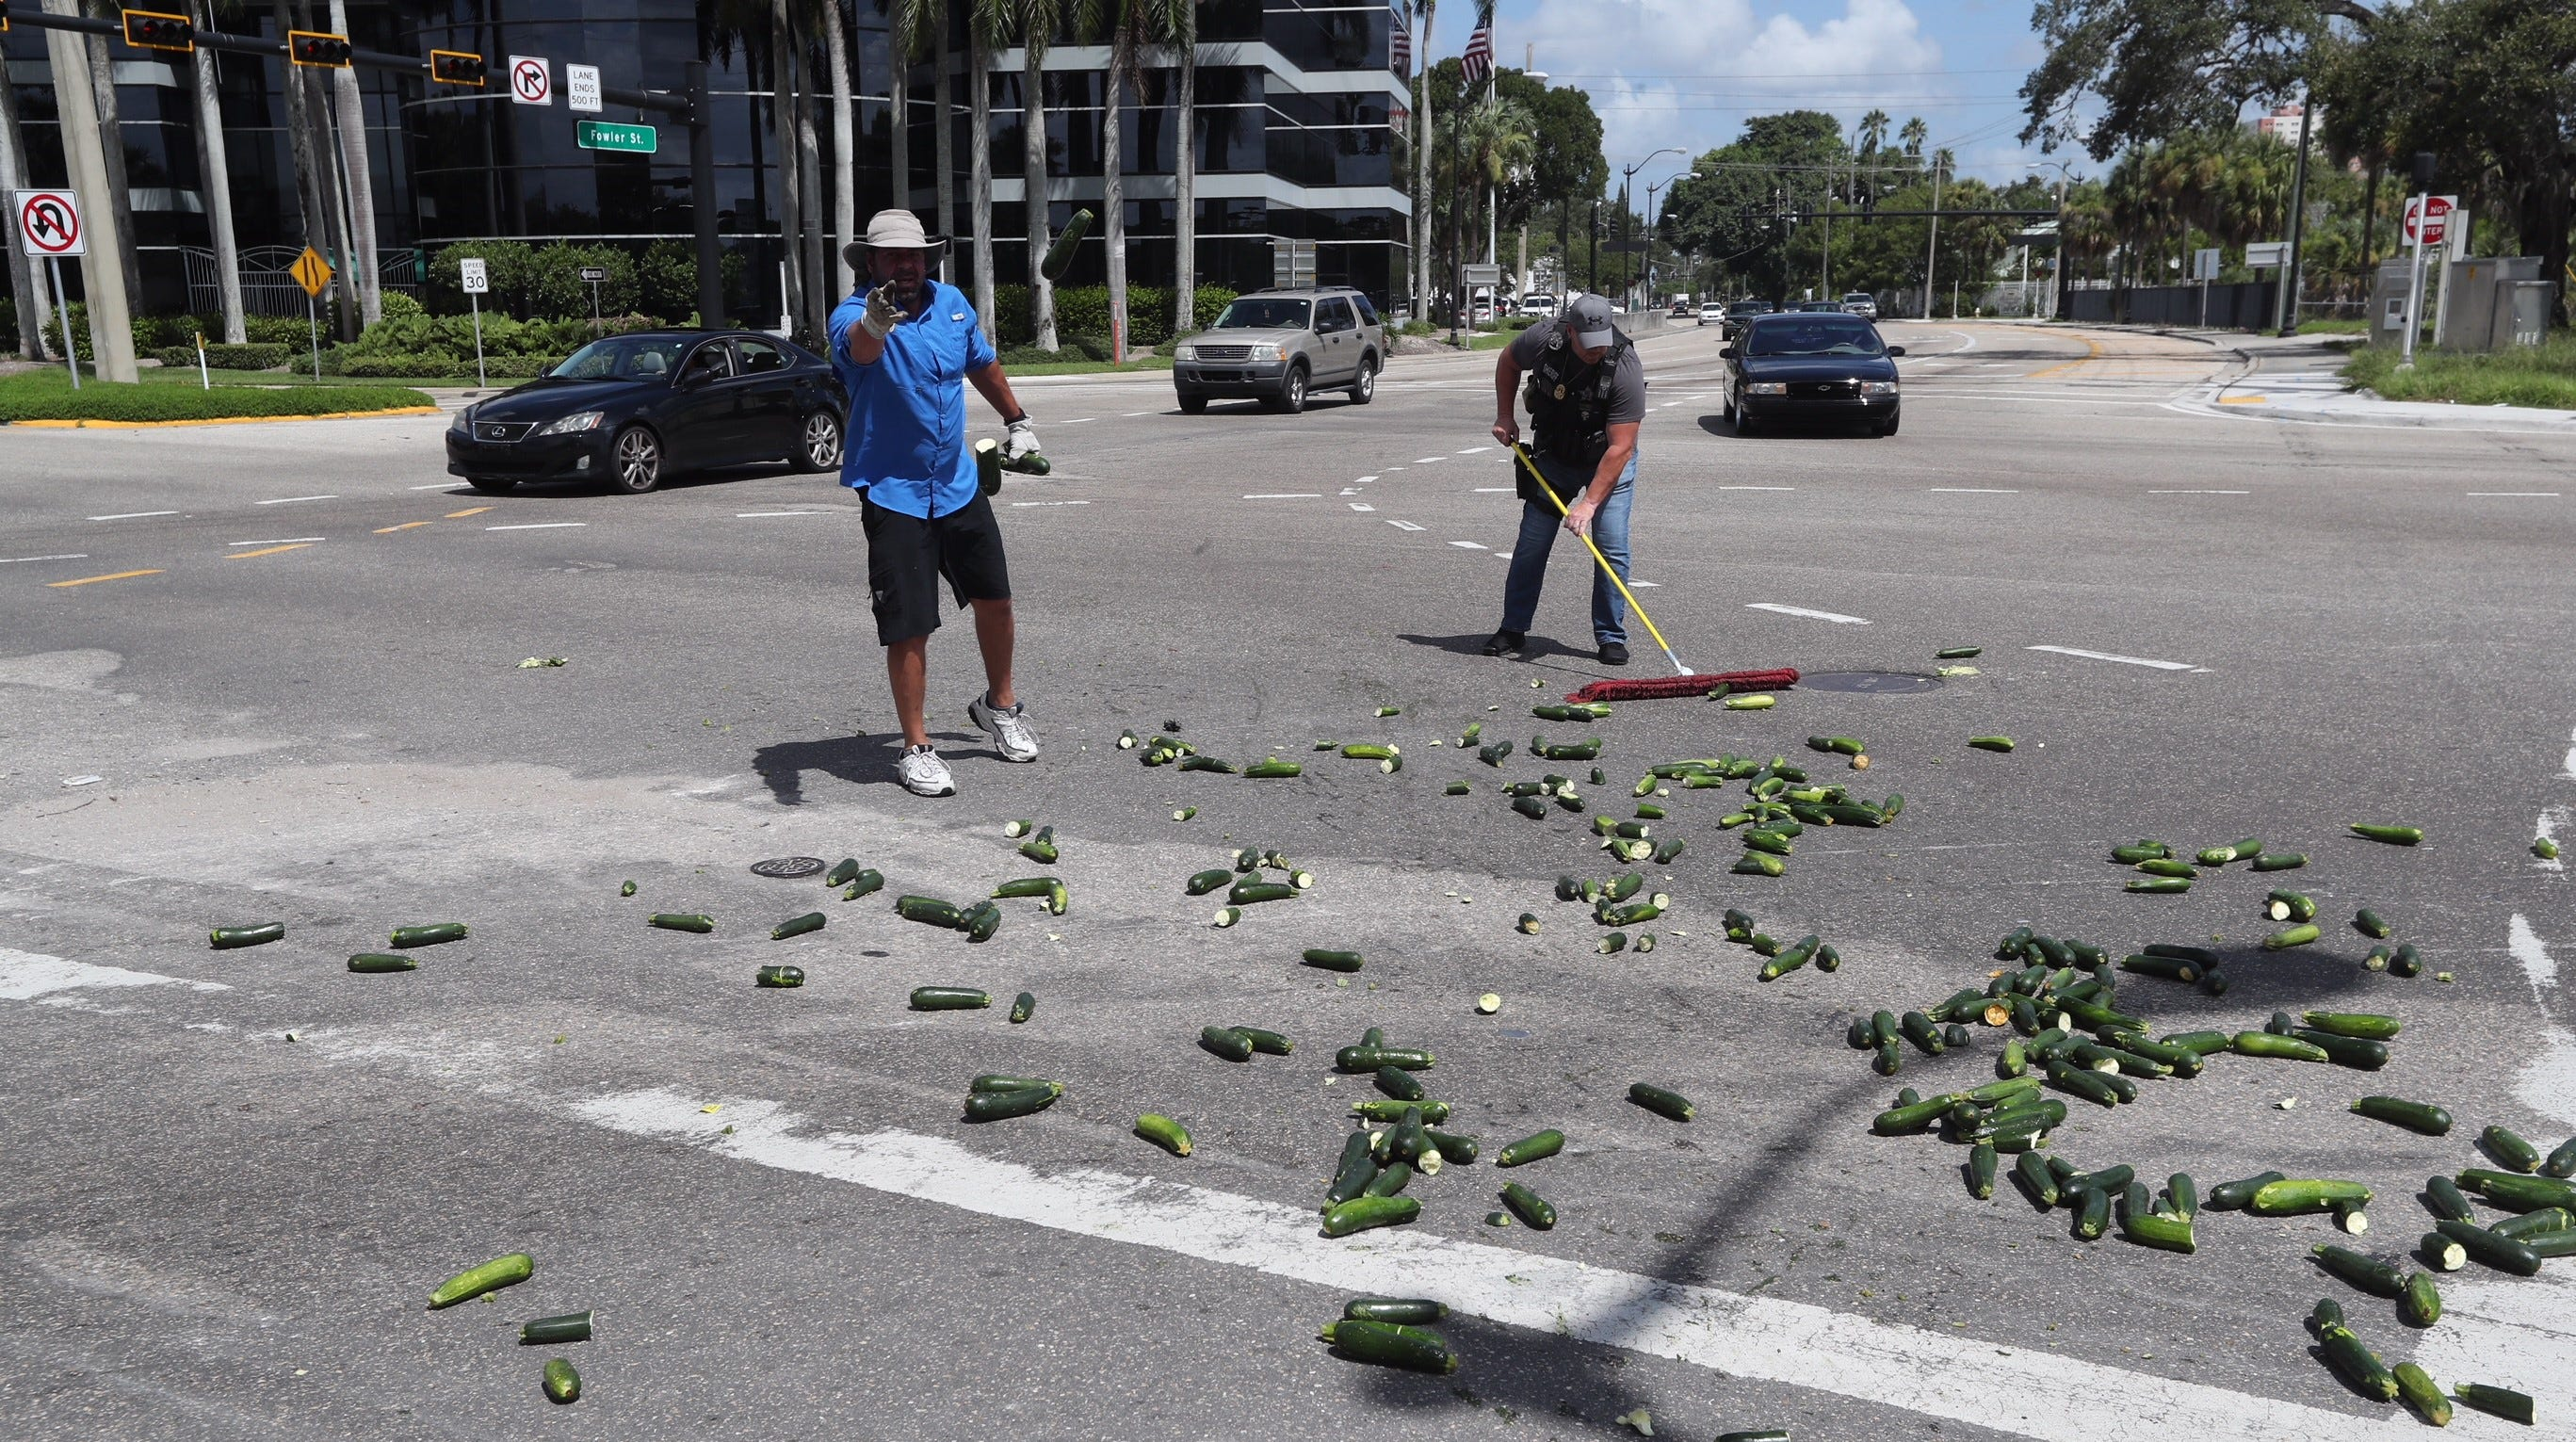 This zucchini got squashed: Boxes of zucchini fall off truck, block Fort Myers intersection